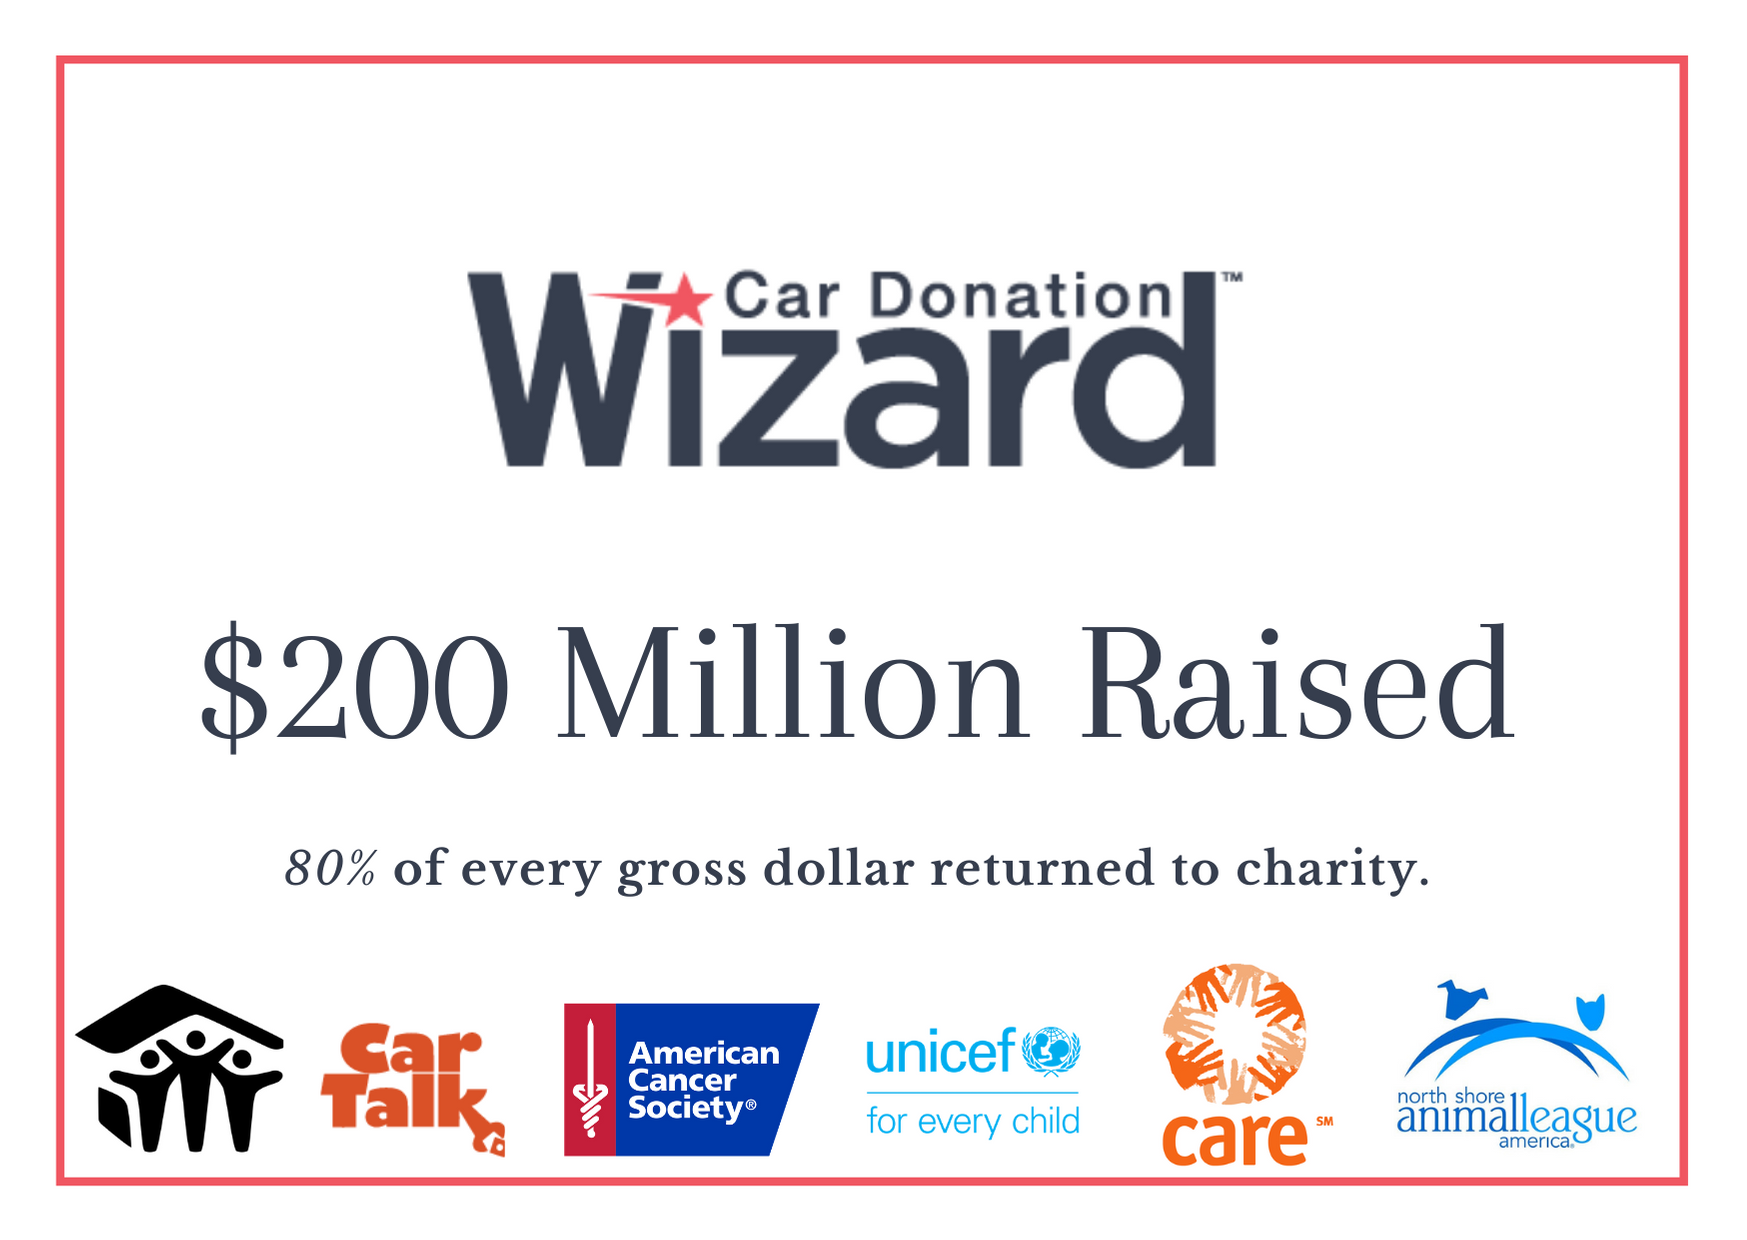 Car Donation Wizard raises 200 Million dollars